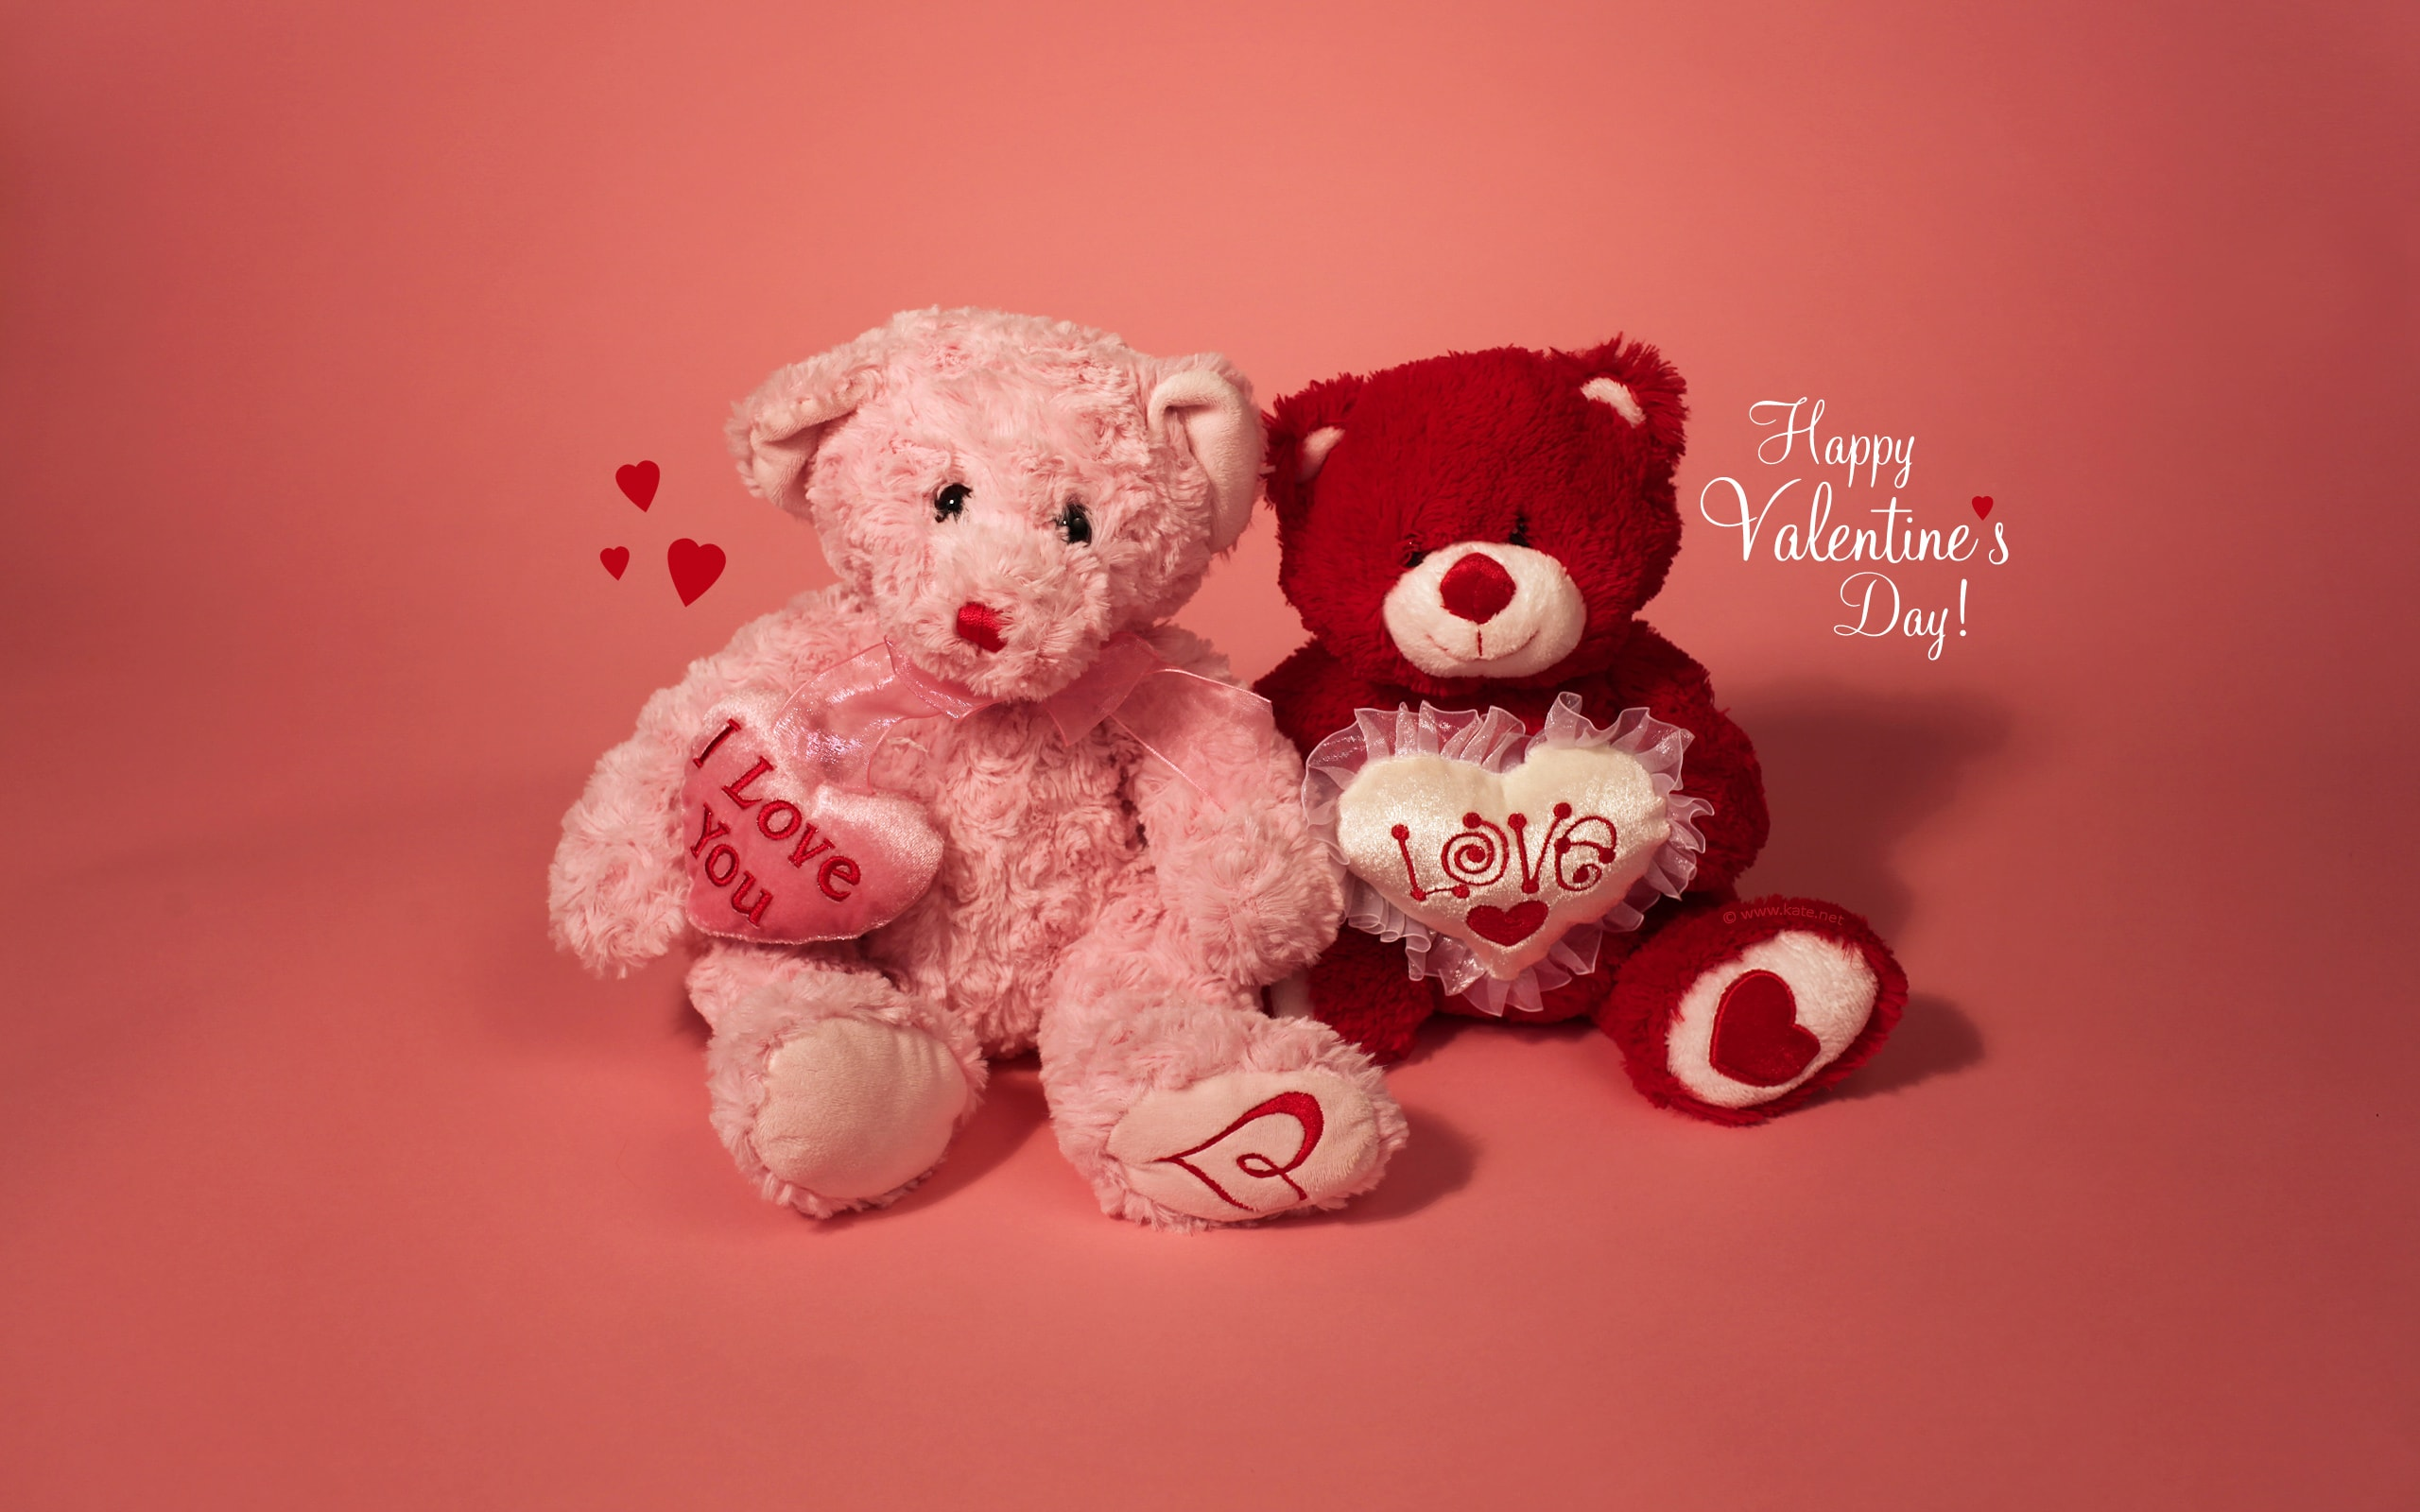 Valentine's Day Widescreen for desktop